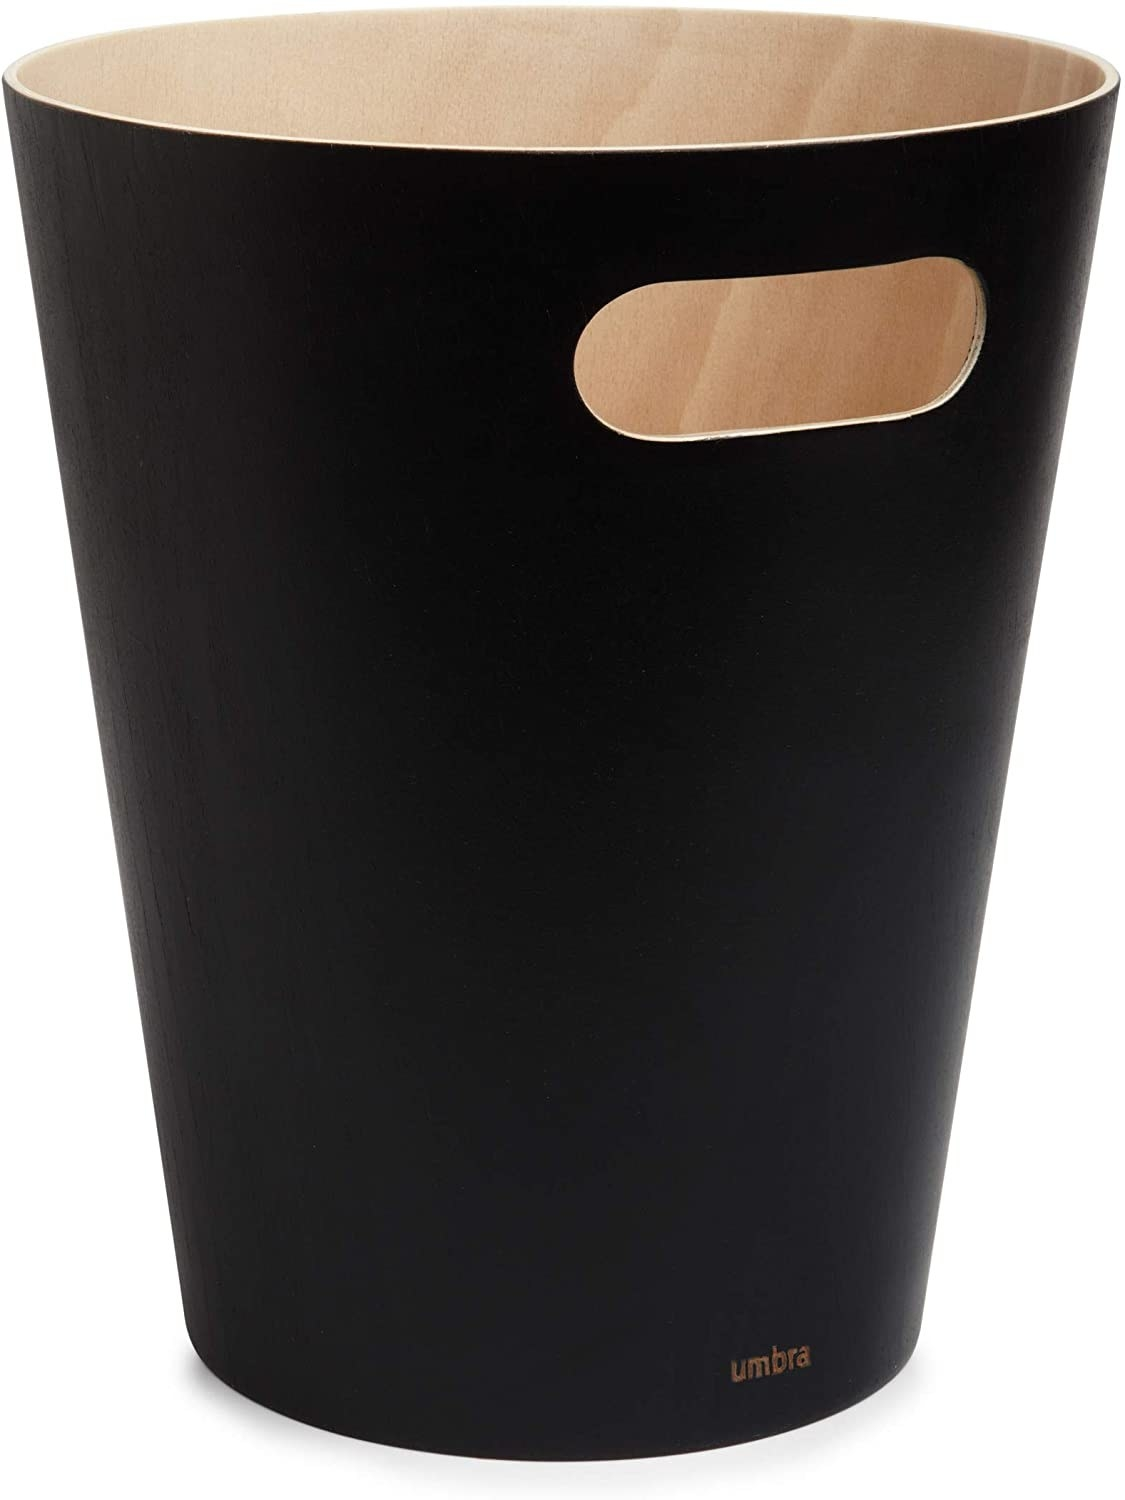 The black Umbra Woodrow 2 Gallon Modern Wooden Trash Can